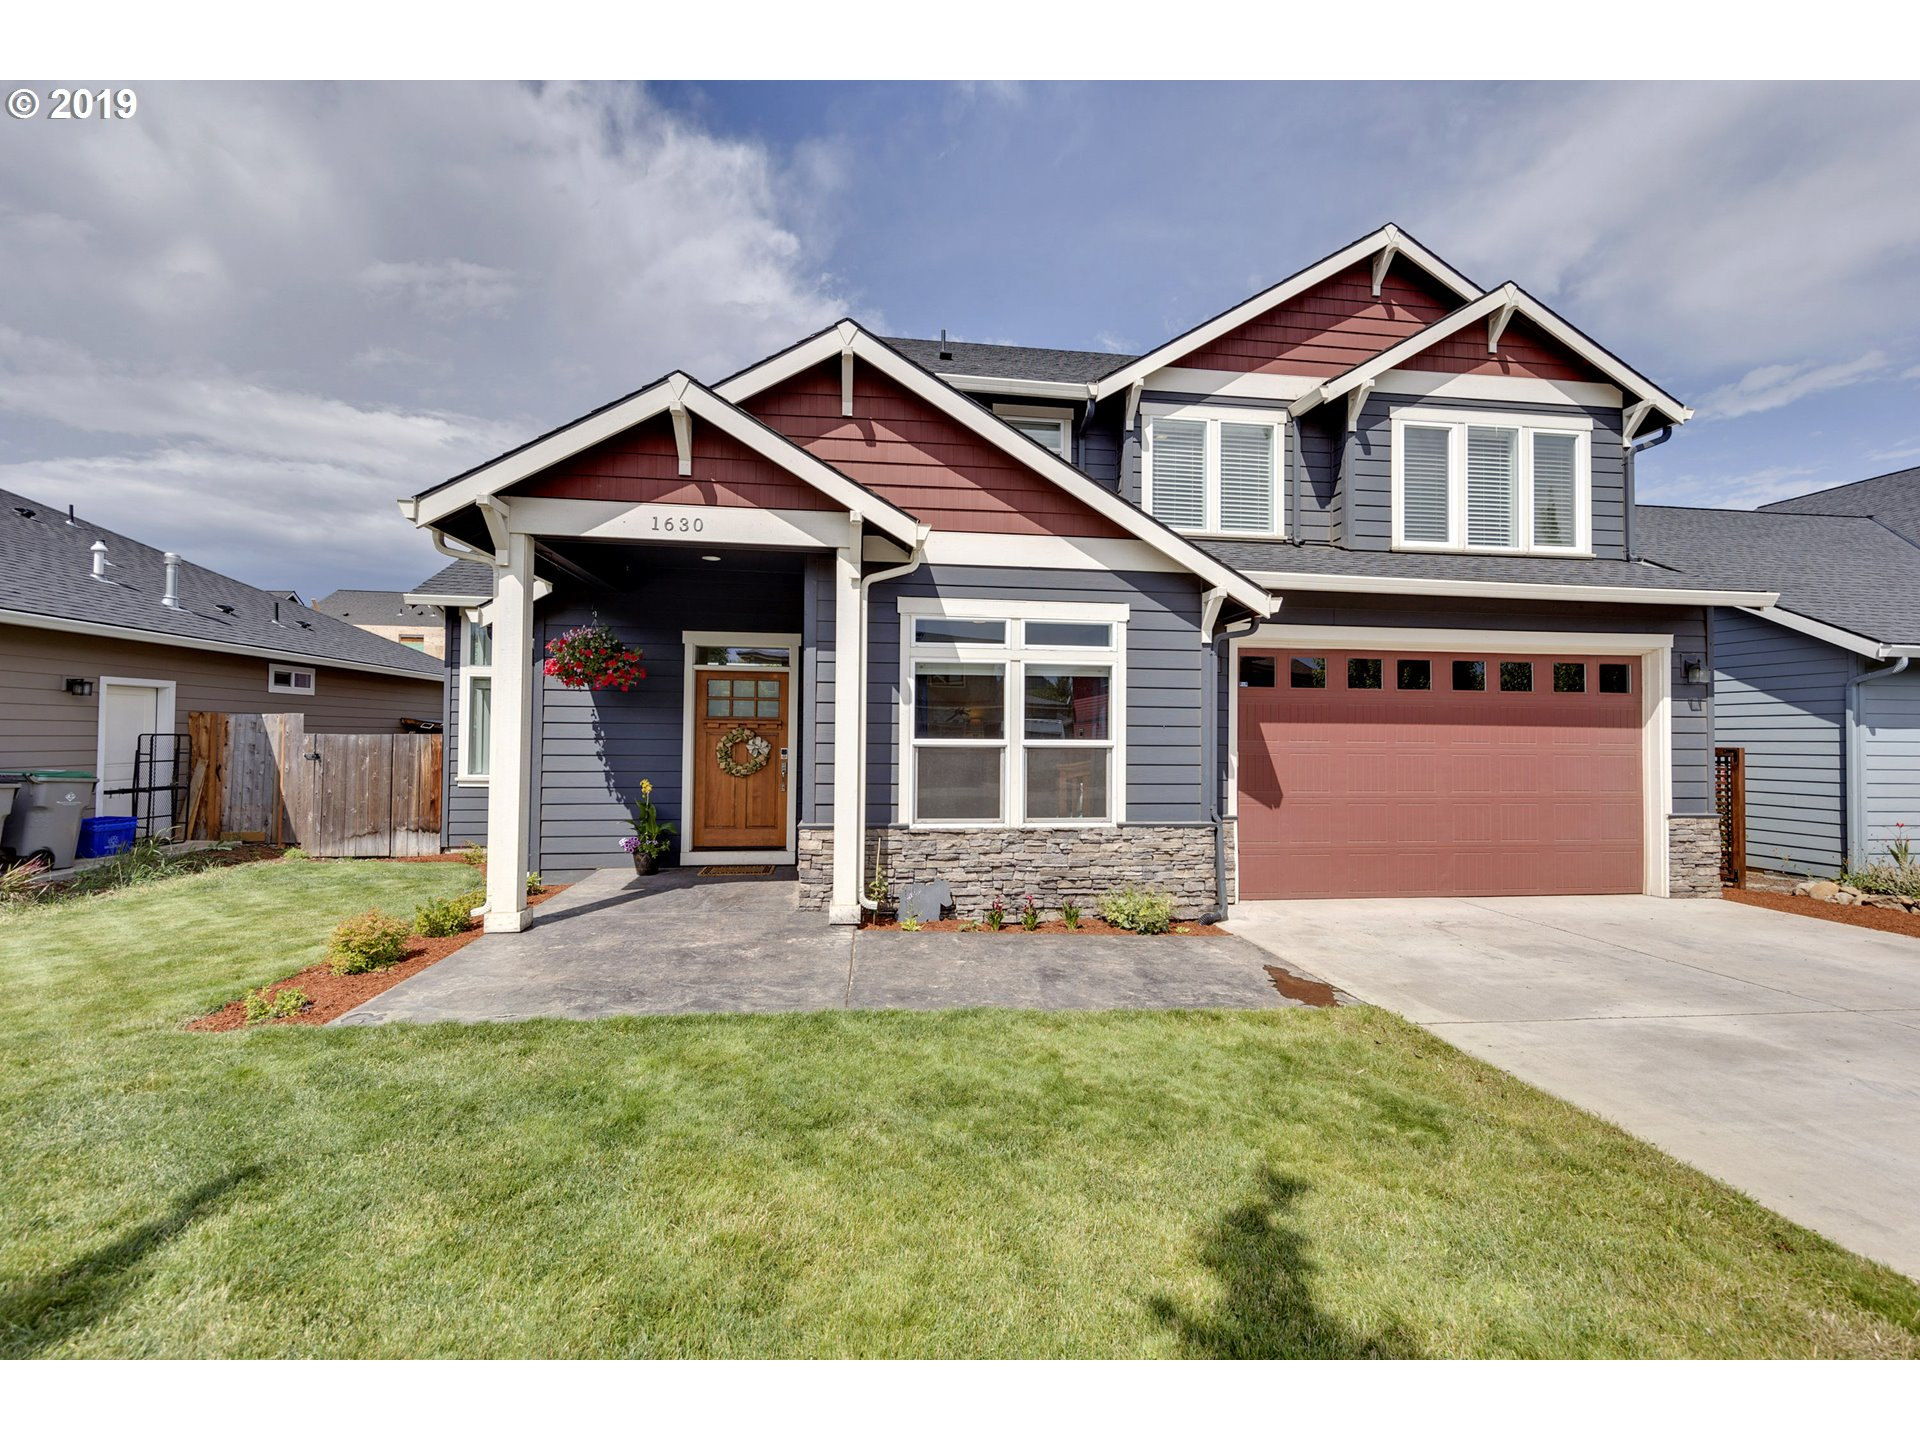 Photo of 1630 3RD ST Hood River OR 97031